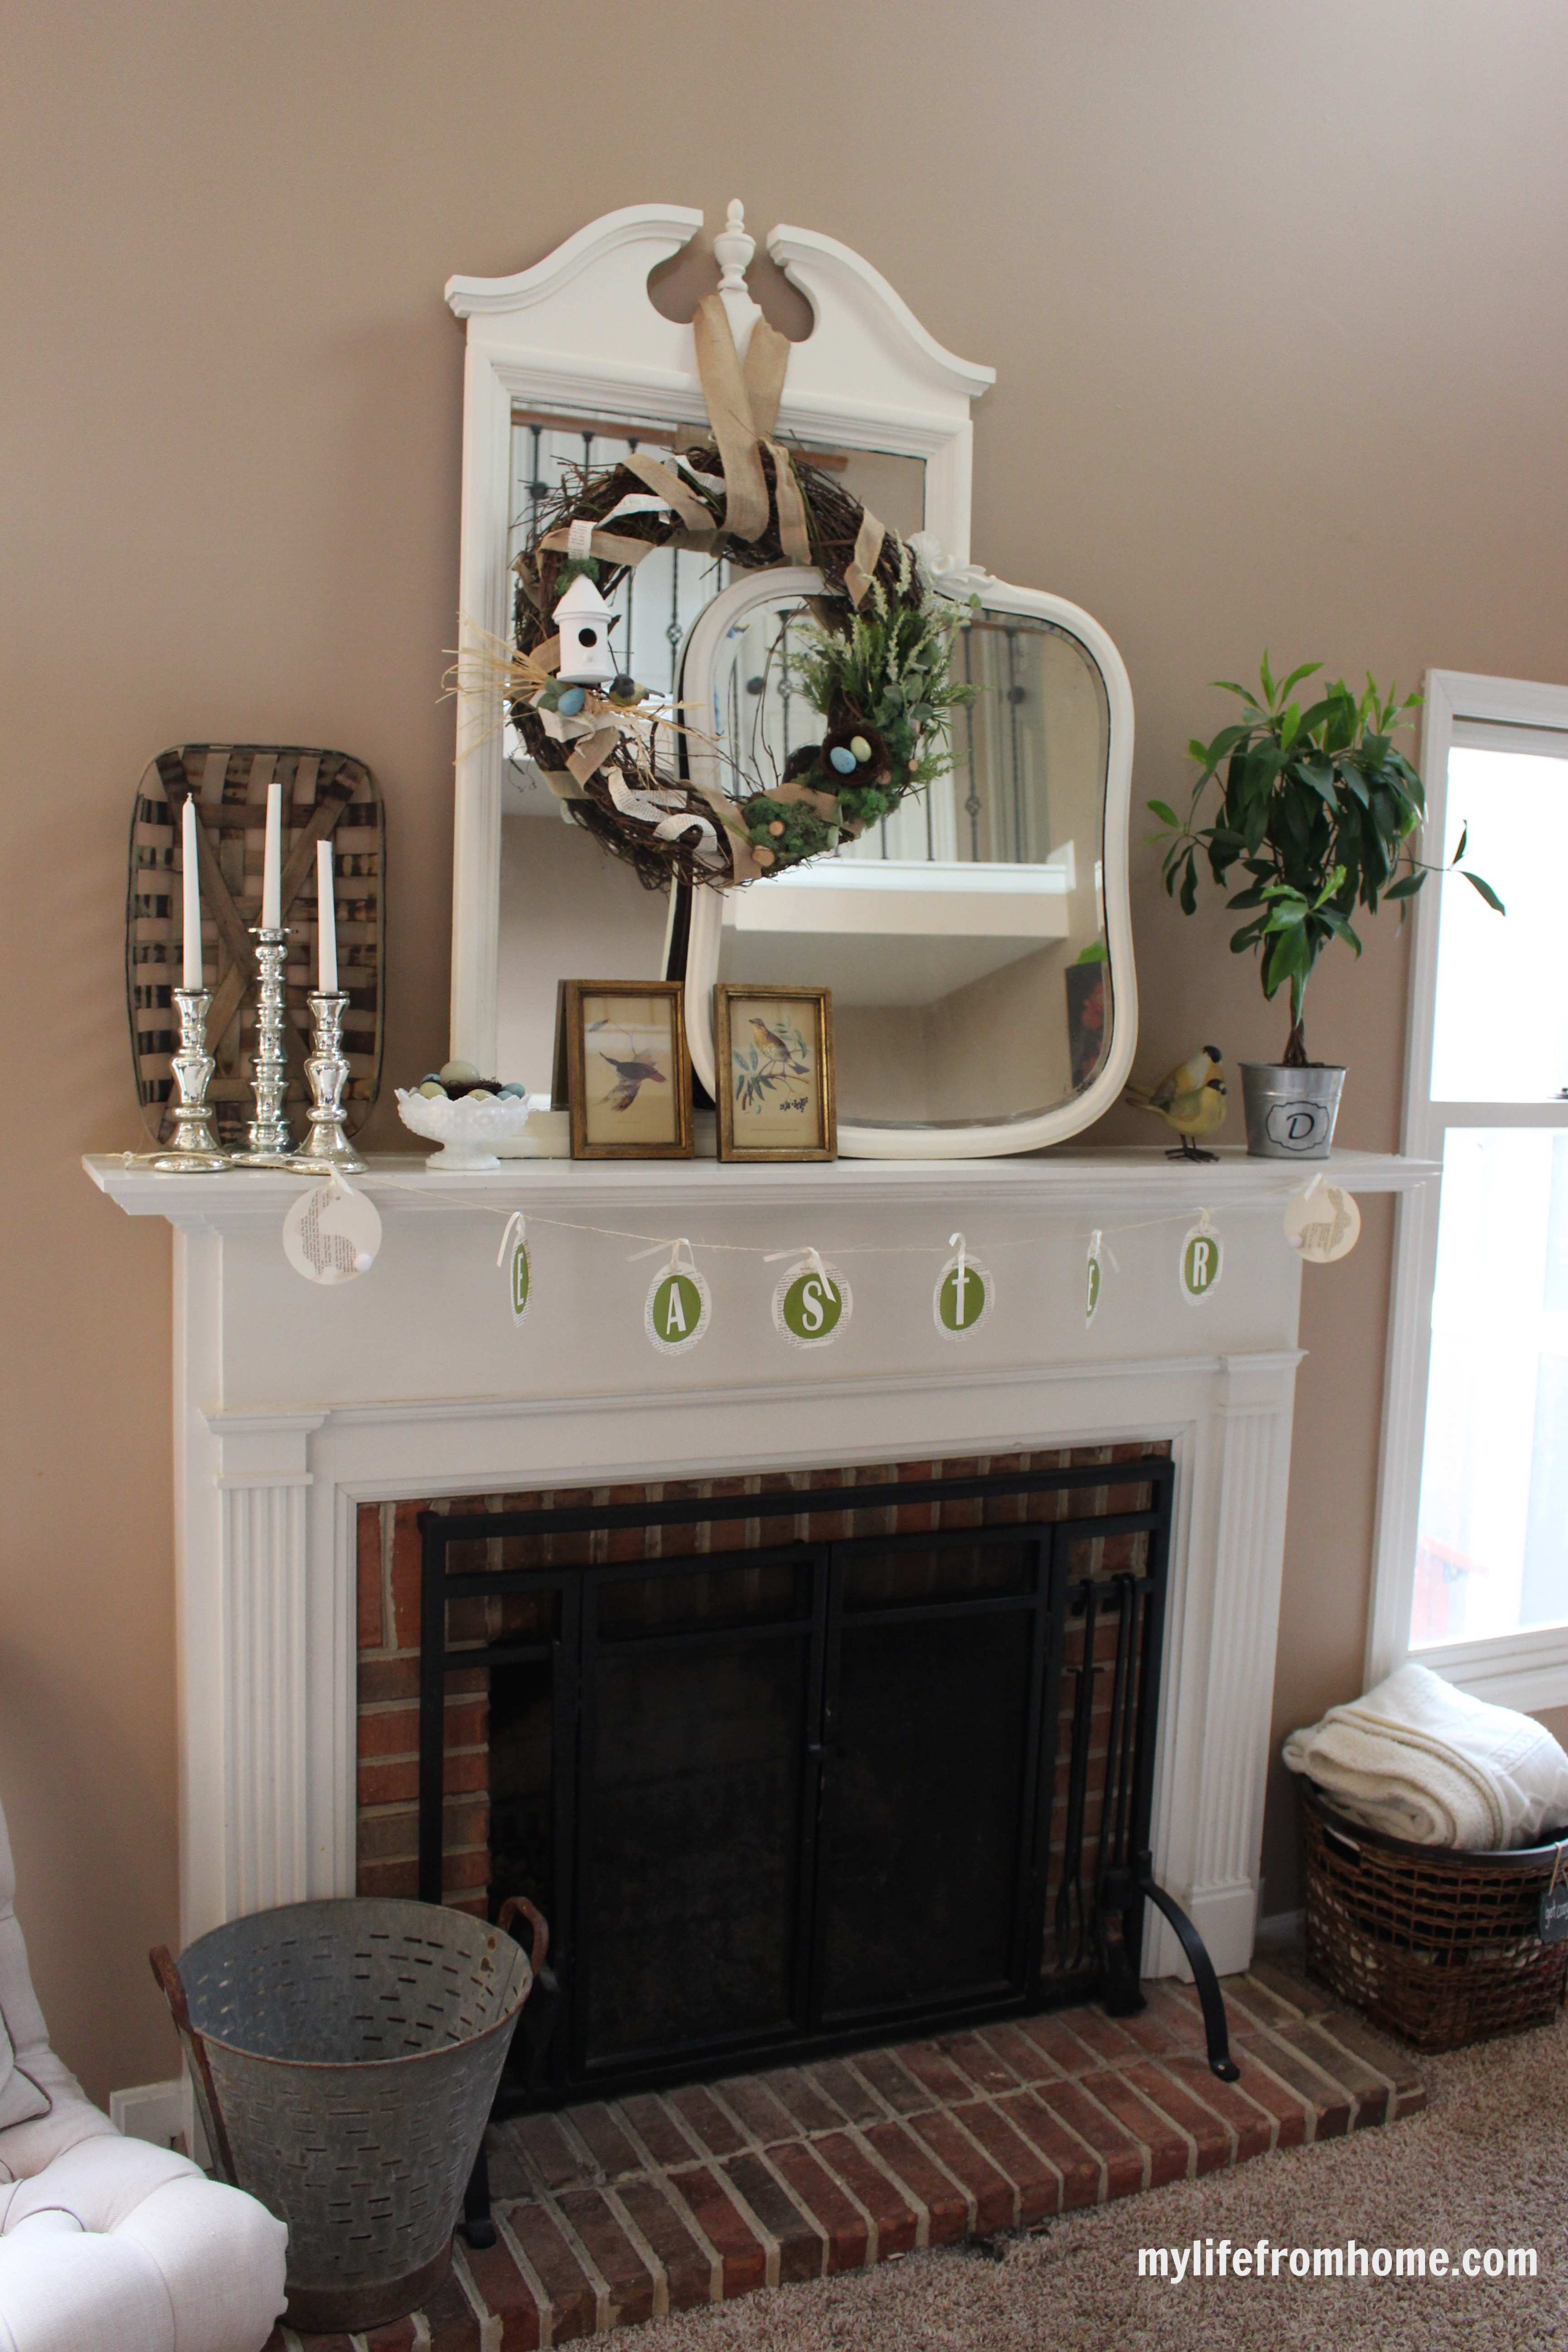 How to Decorate Your Mantel for Spring by www.mylifefromhome.com